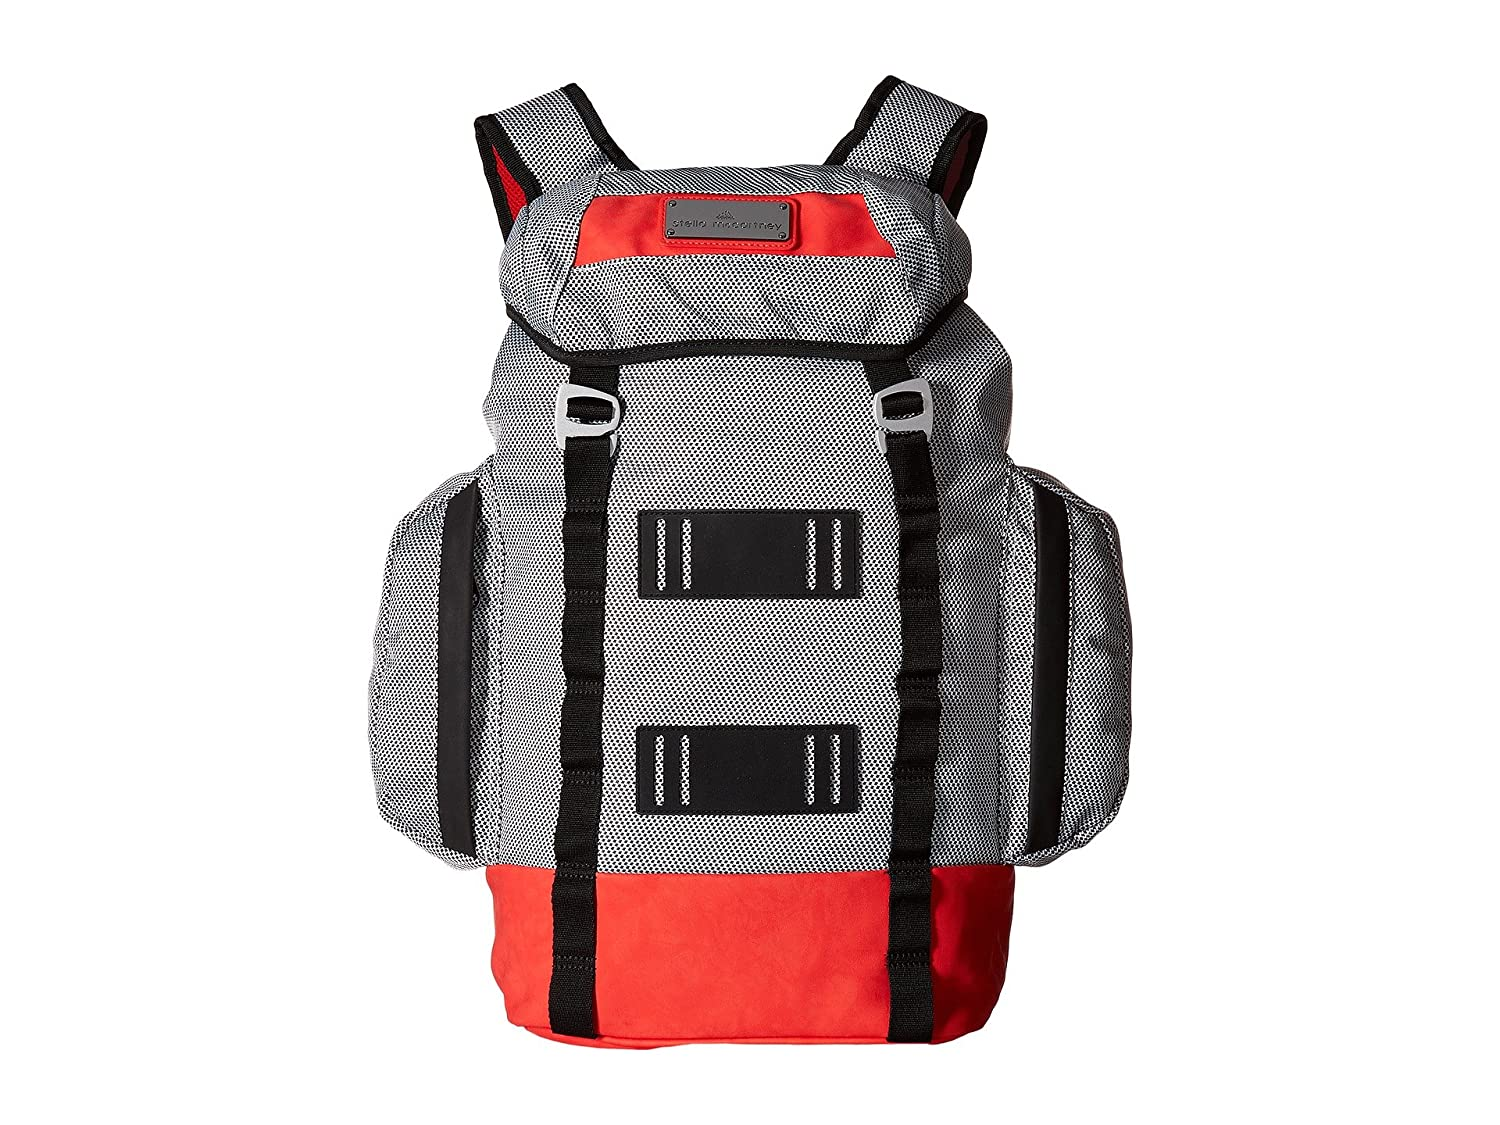 [アディダス] adidas by Stella McCartney レディース Backpack Wintersport バックパック [並行輸入品] B01N43KQJE White/Red